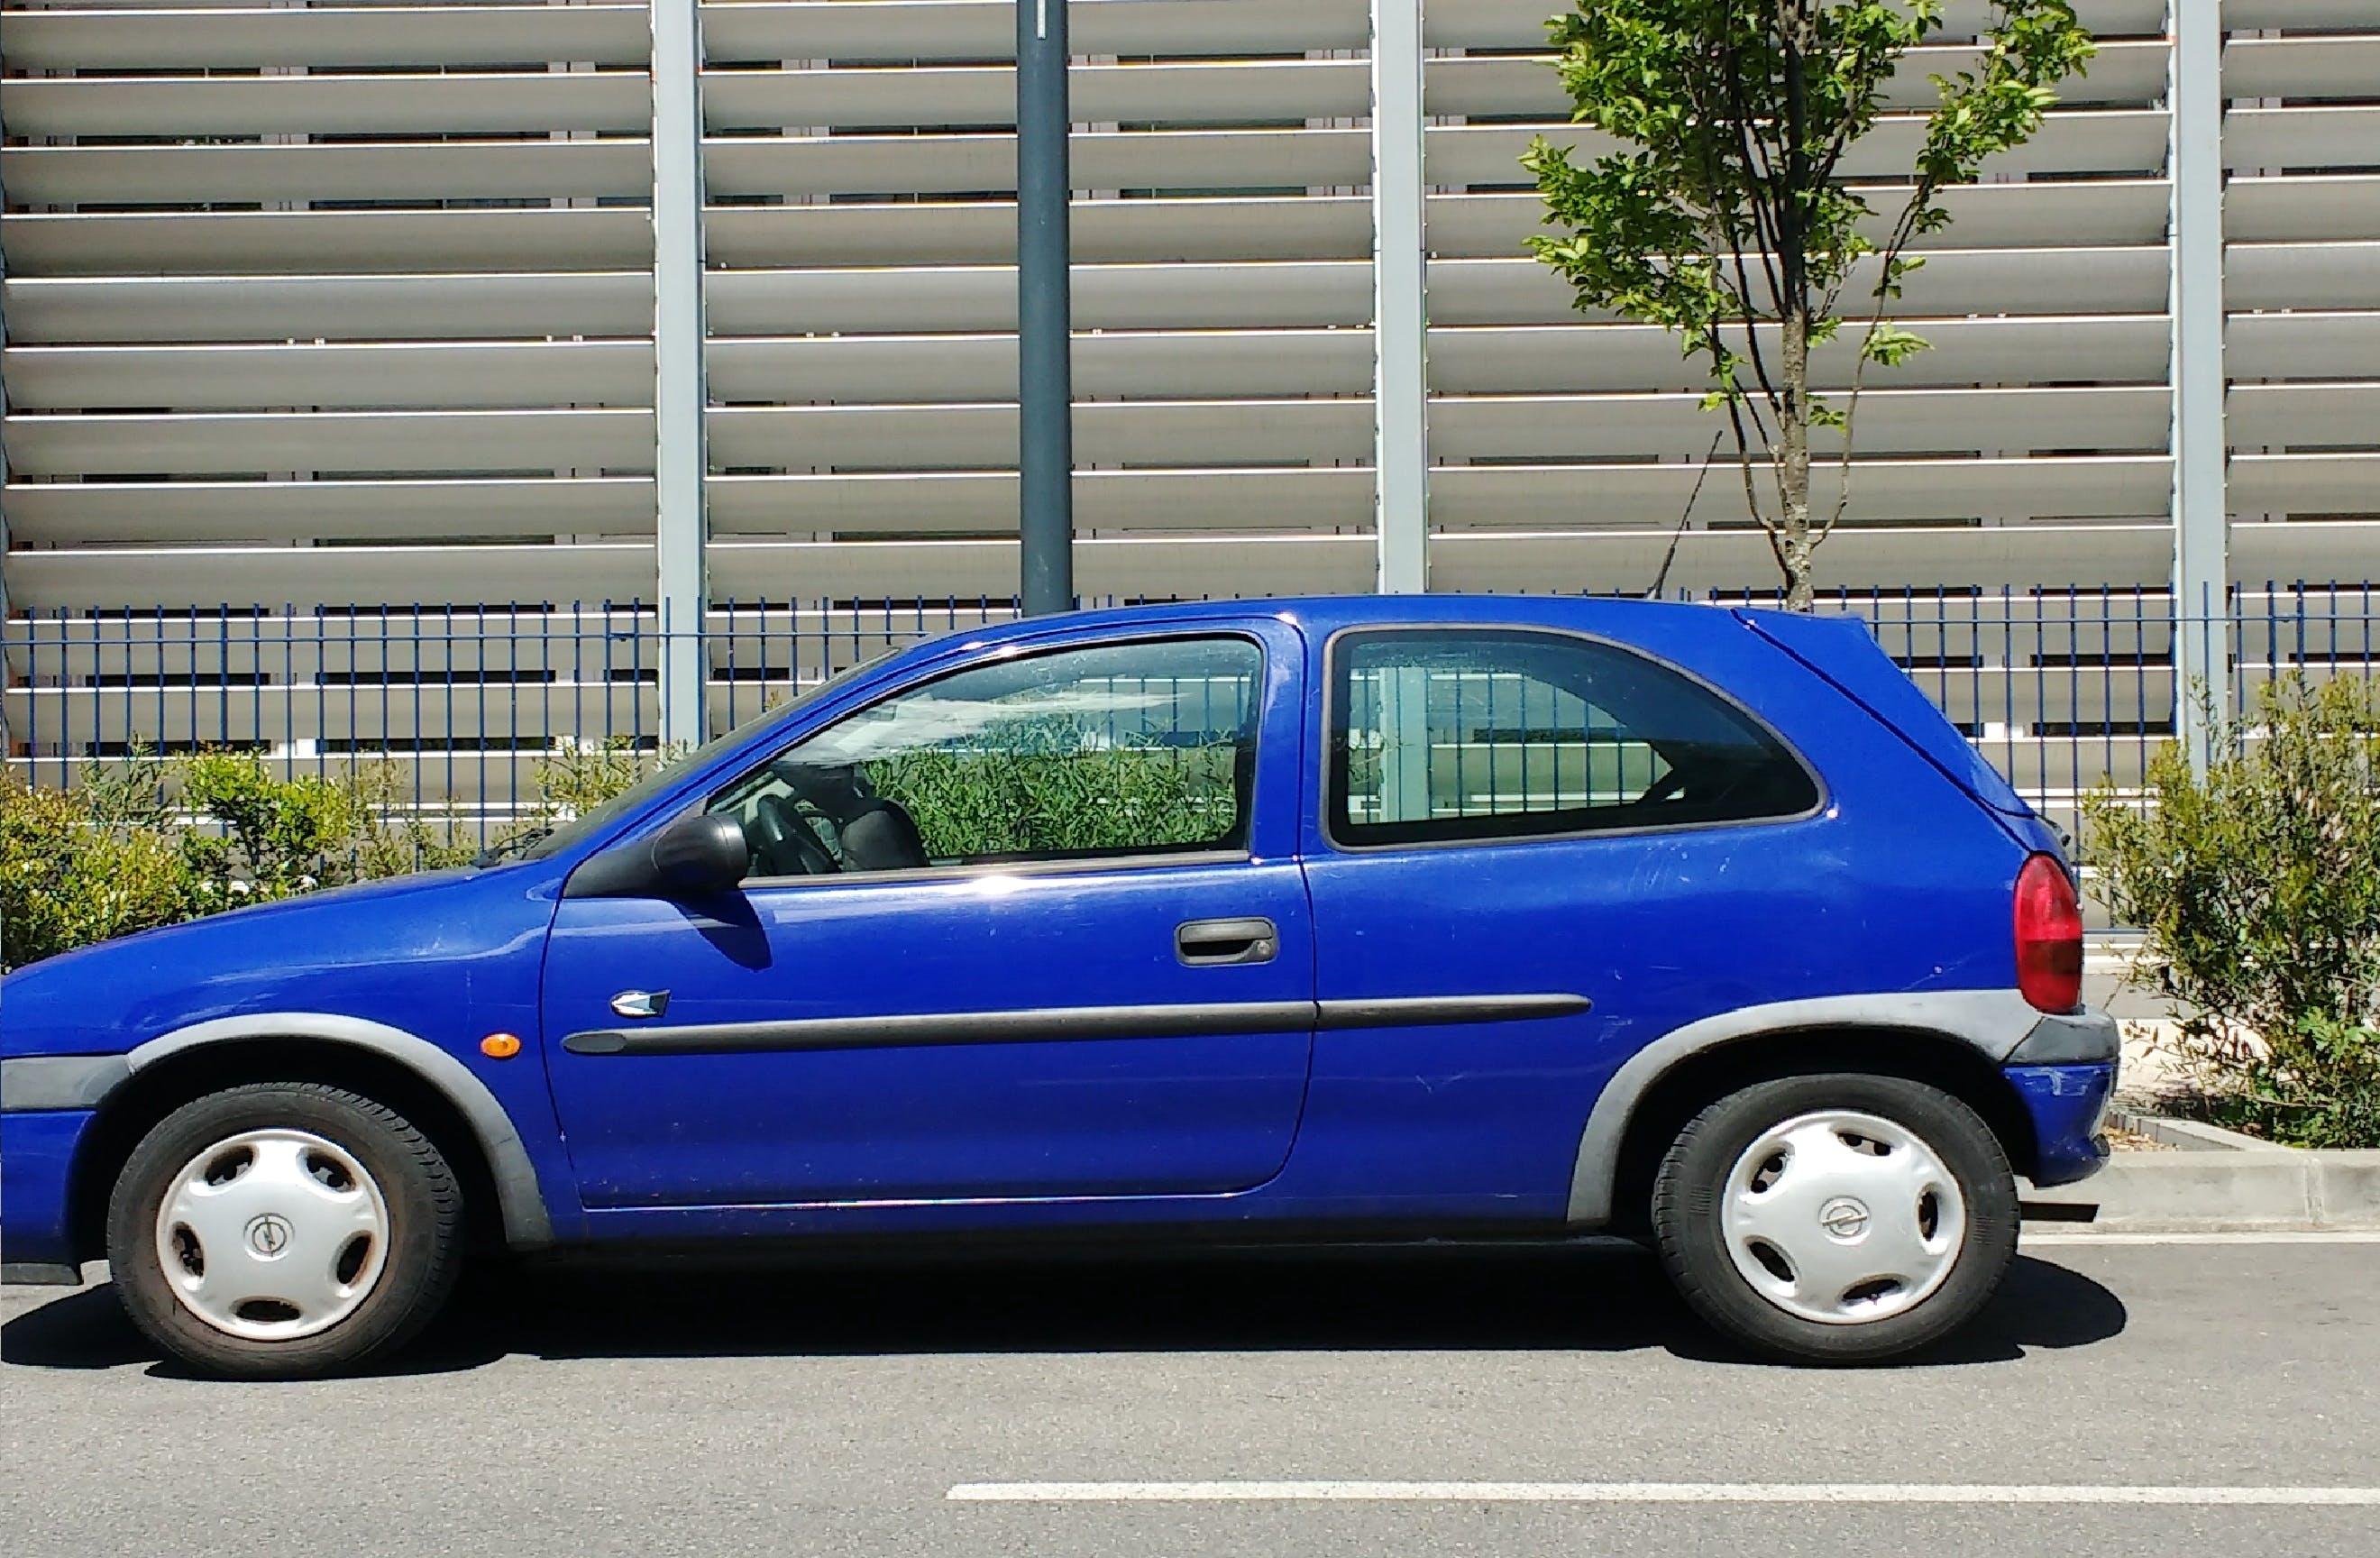 opel corsa city, 2000, Essence